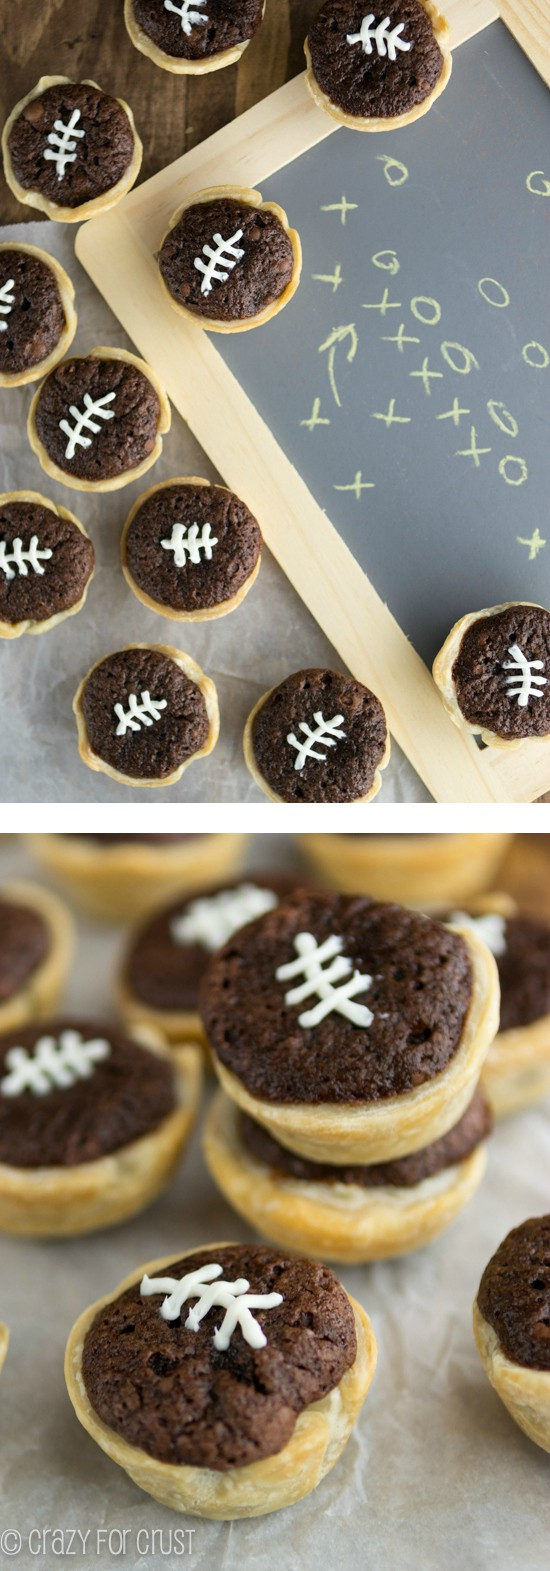 Mini Brownie Football Pies | www.crazyforcrust.com | Perfect for game day!